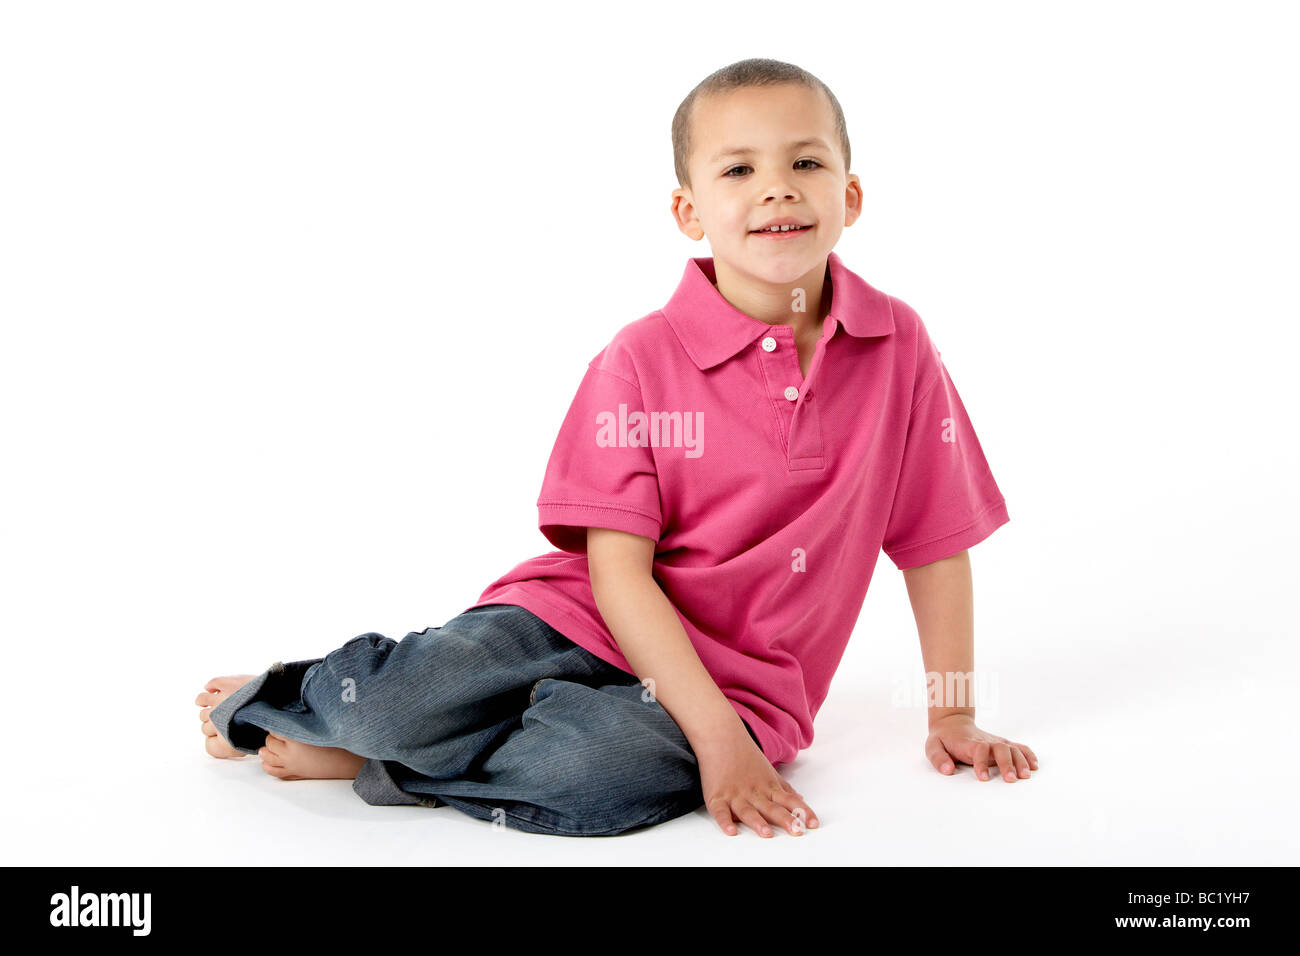 Young Boy Sitting In Studio - Stock Image